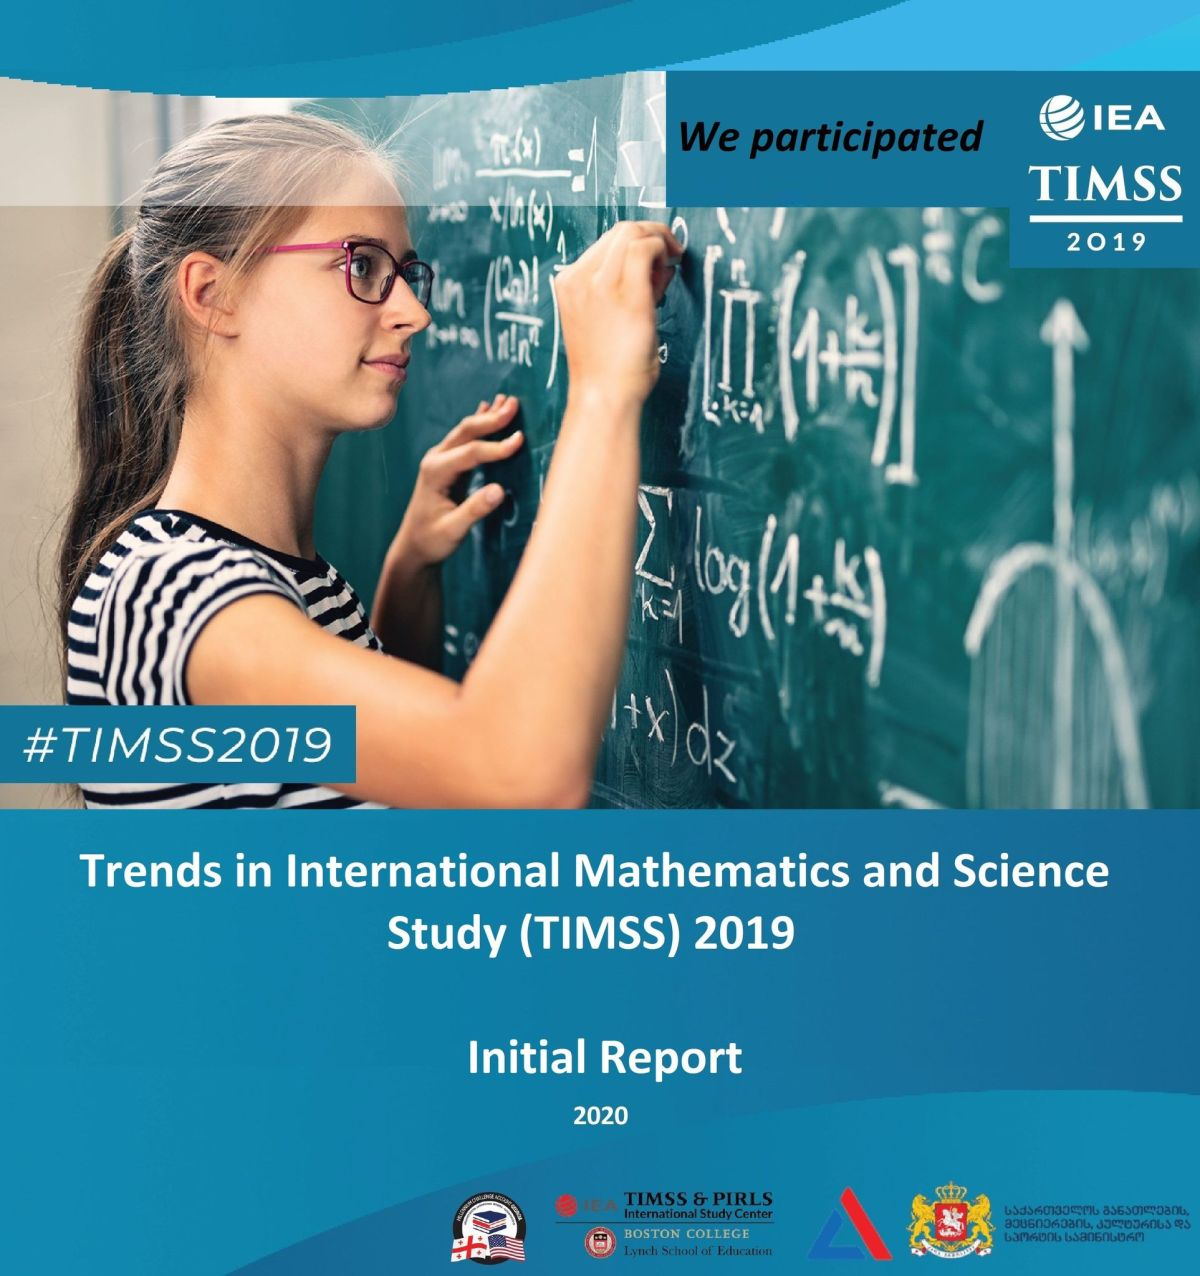 Trends in International Mathematics and Science Study (TIMSS) 2019